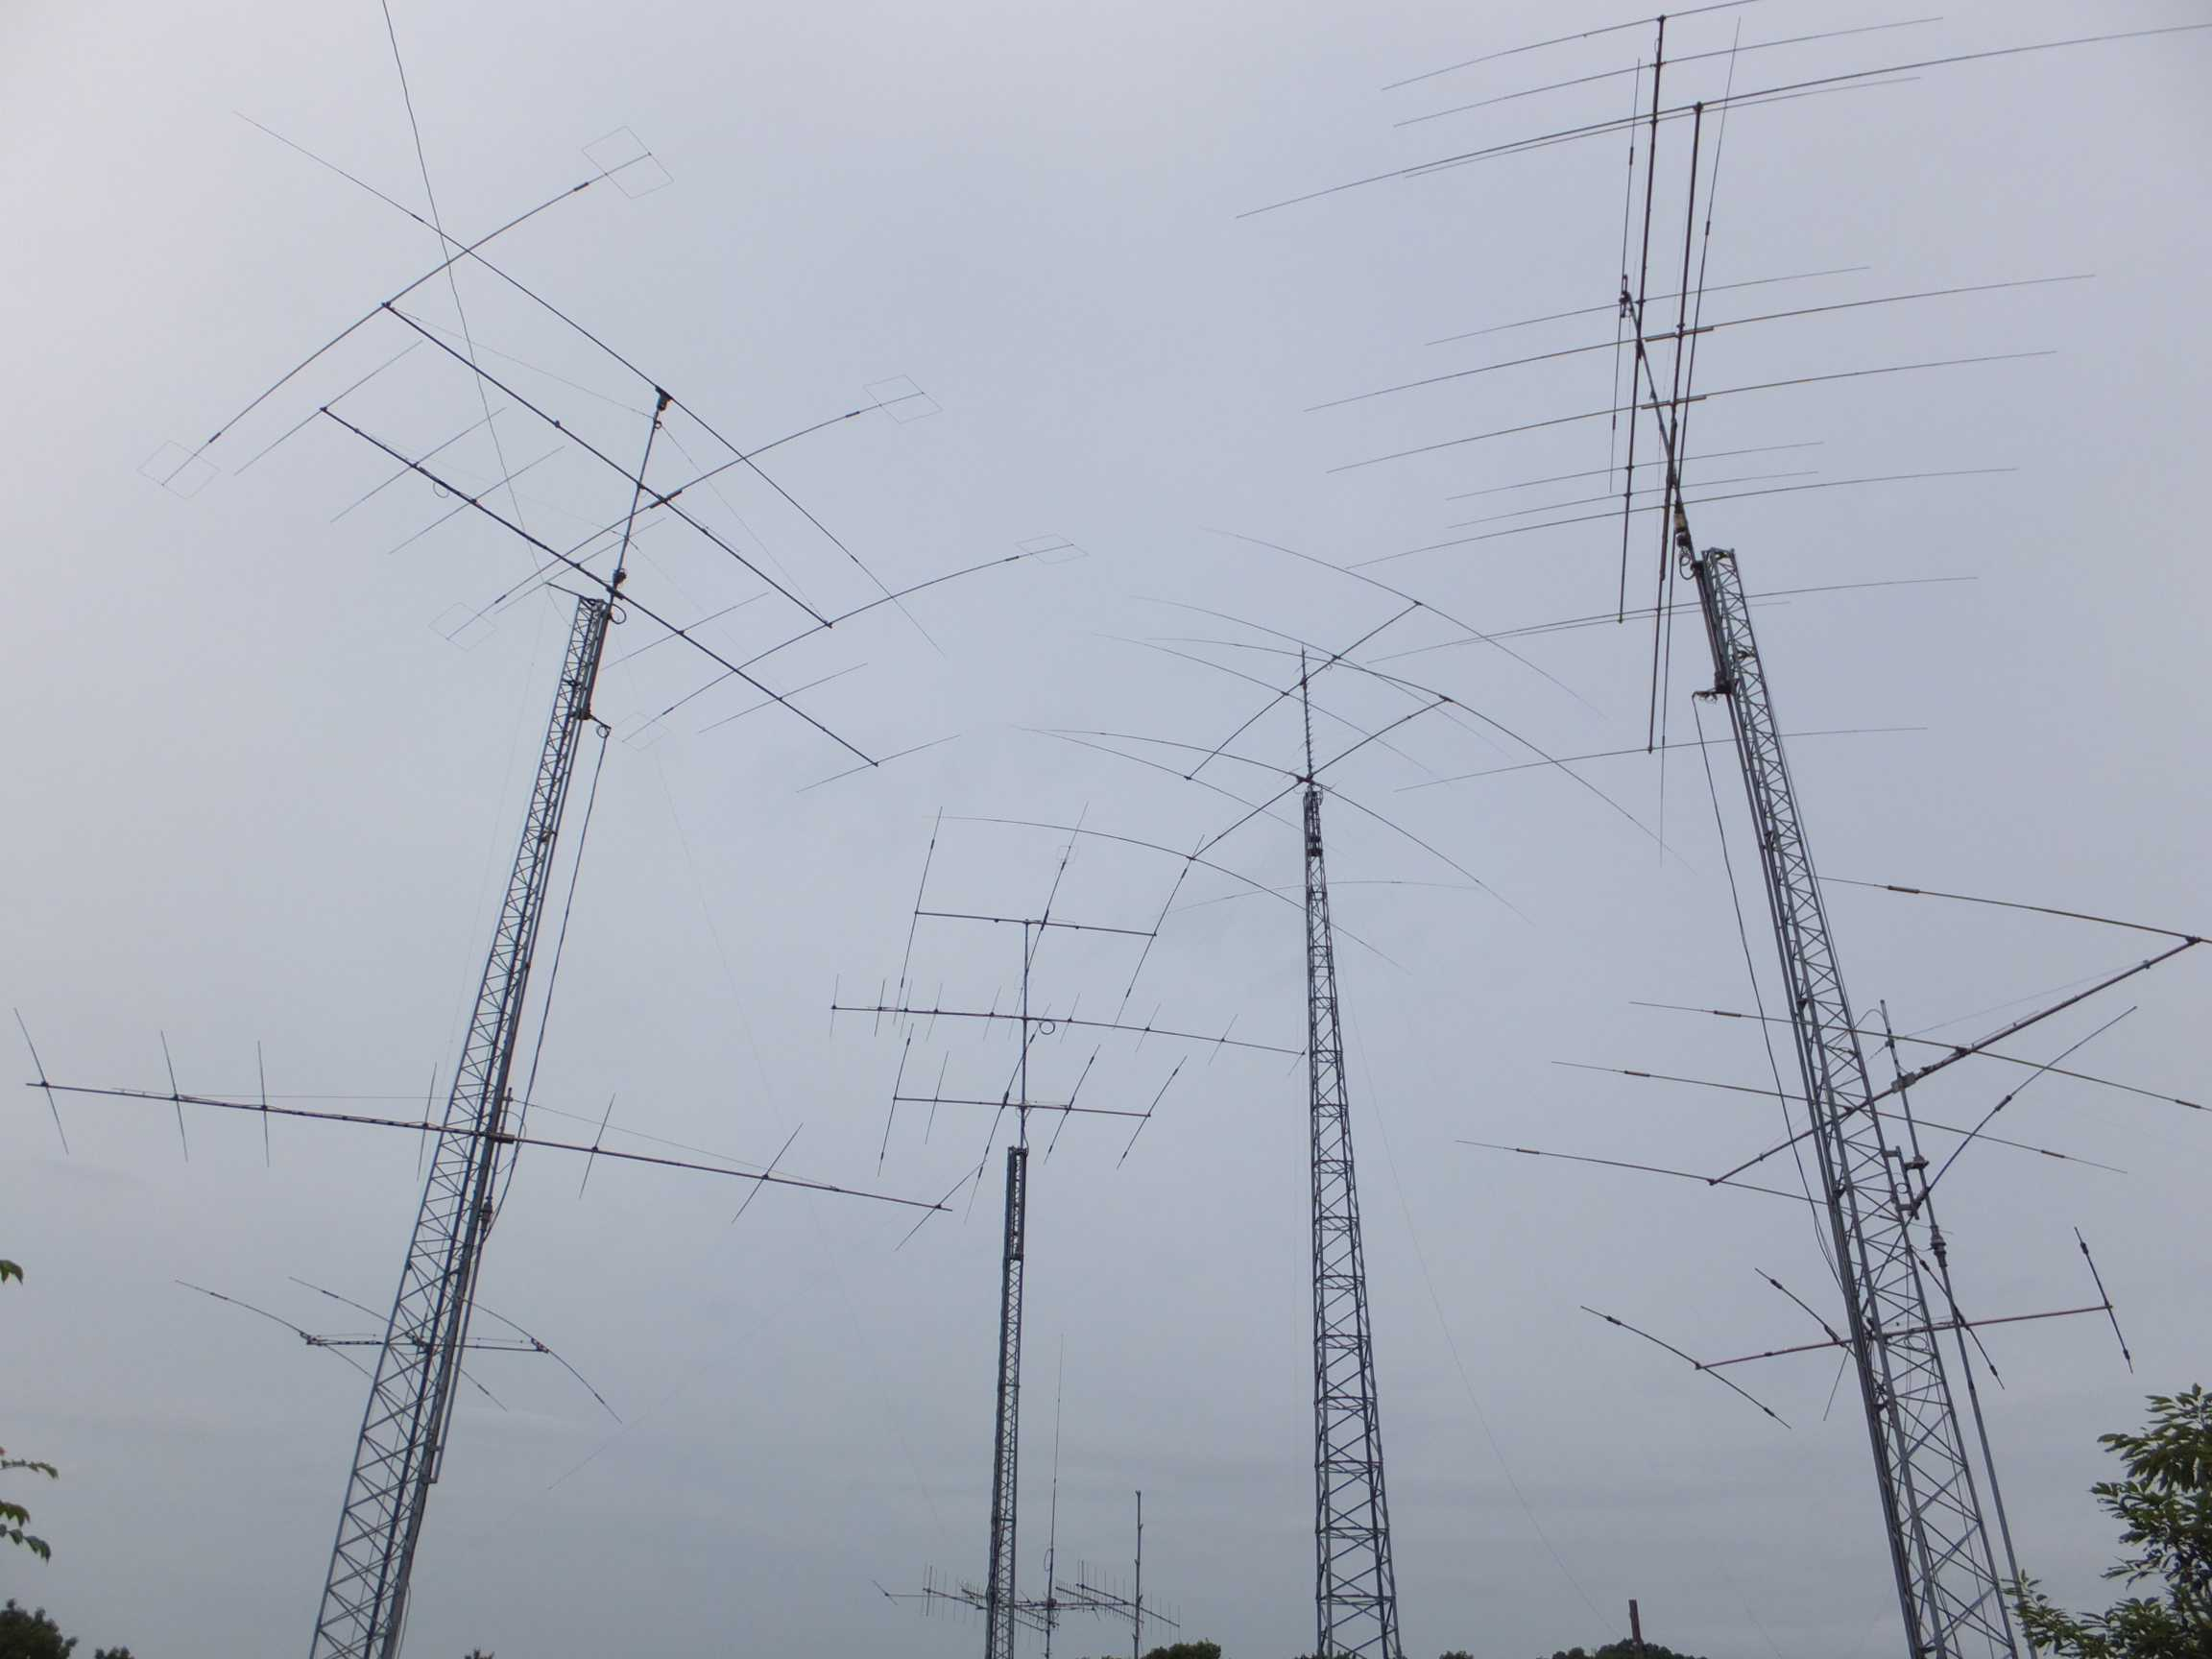 Antenna farm - not for me:-)